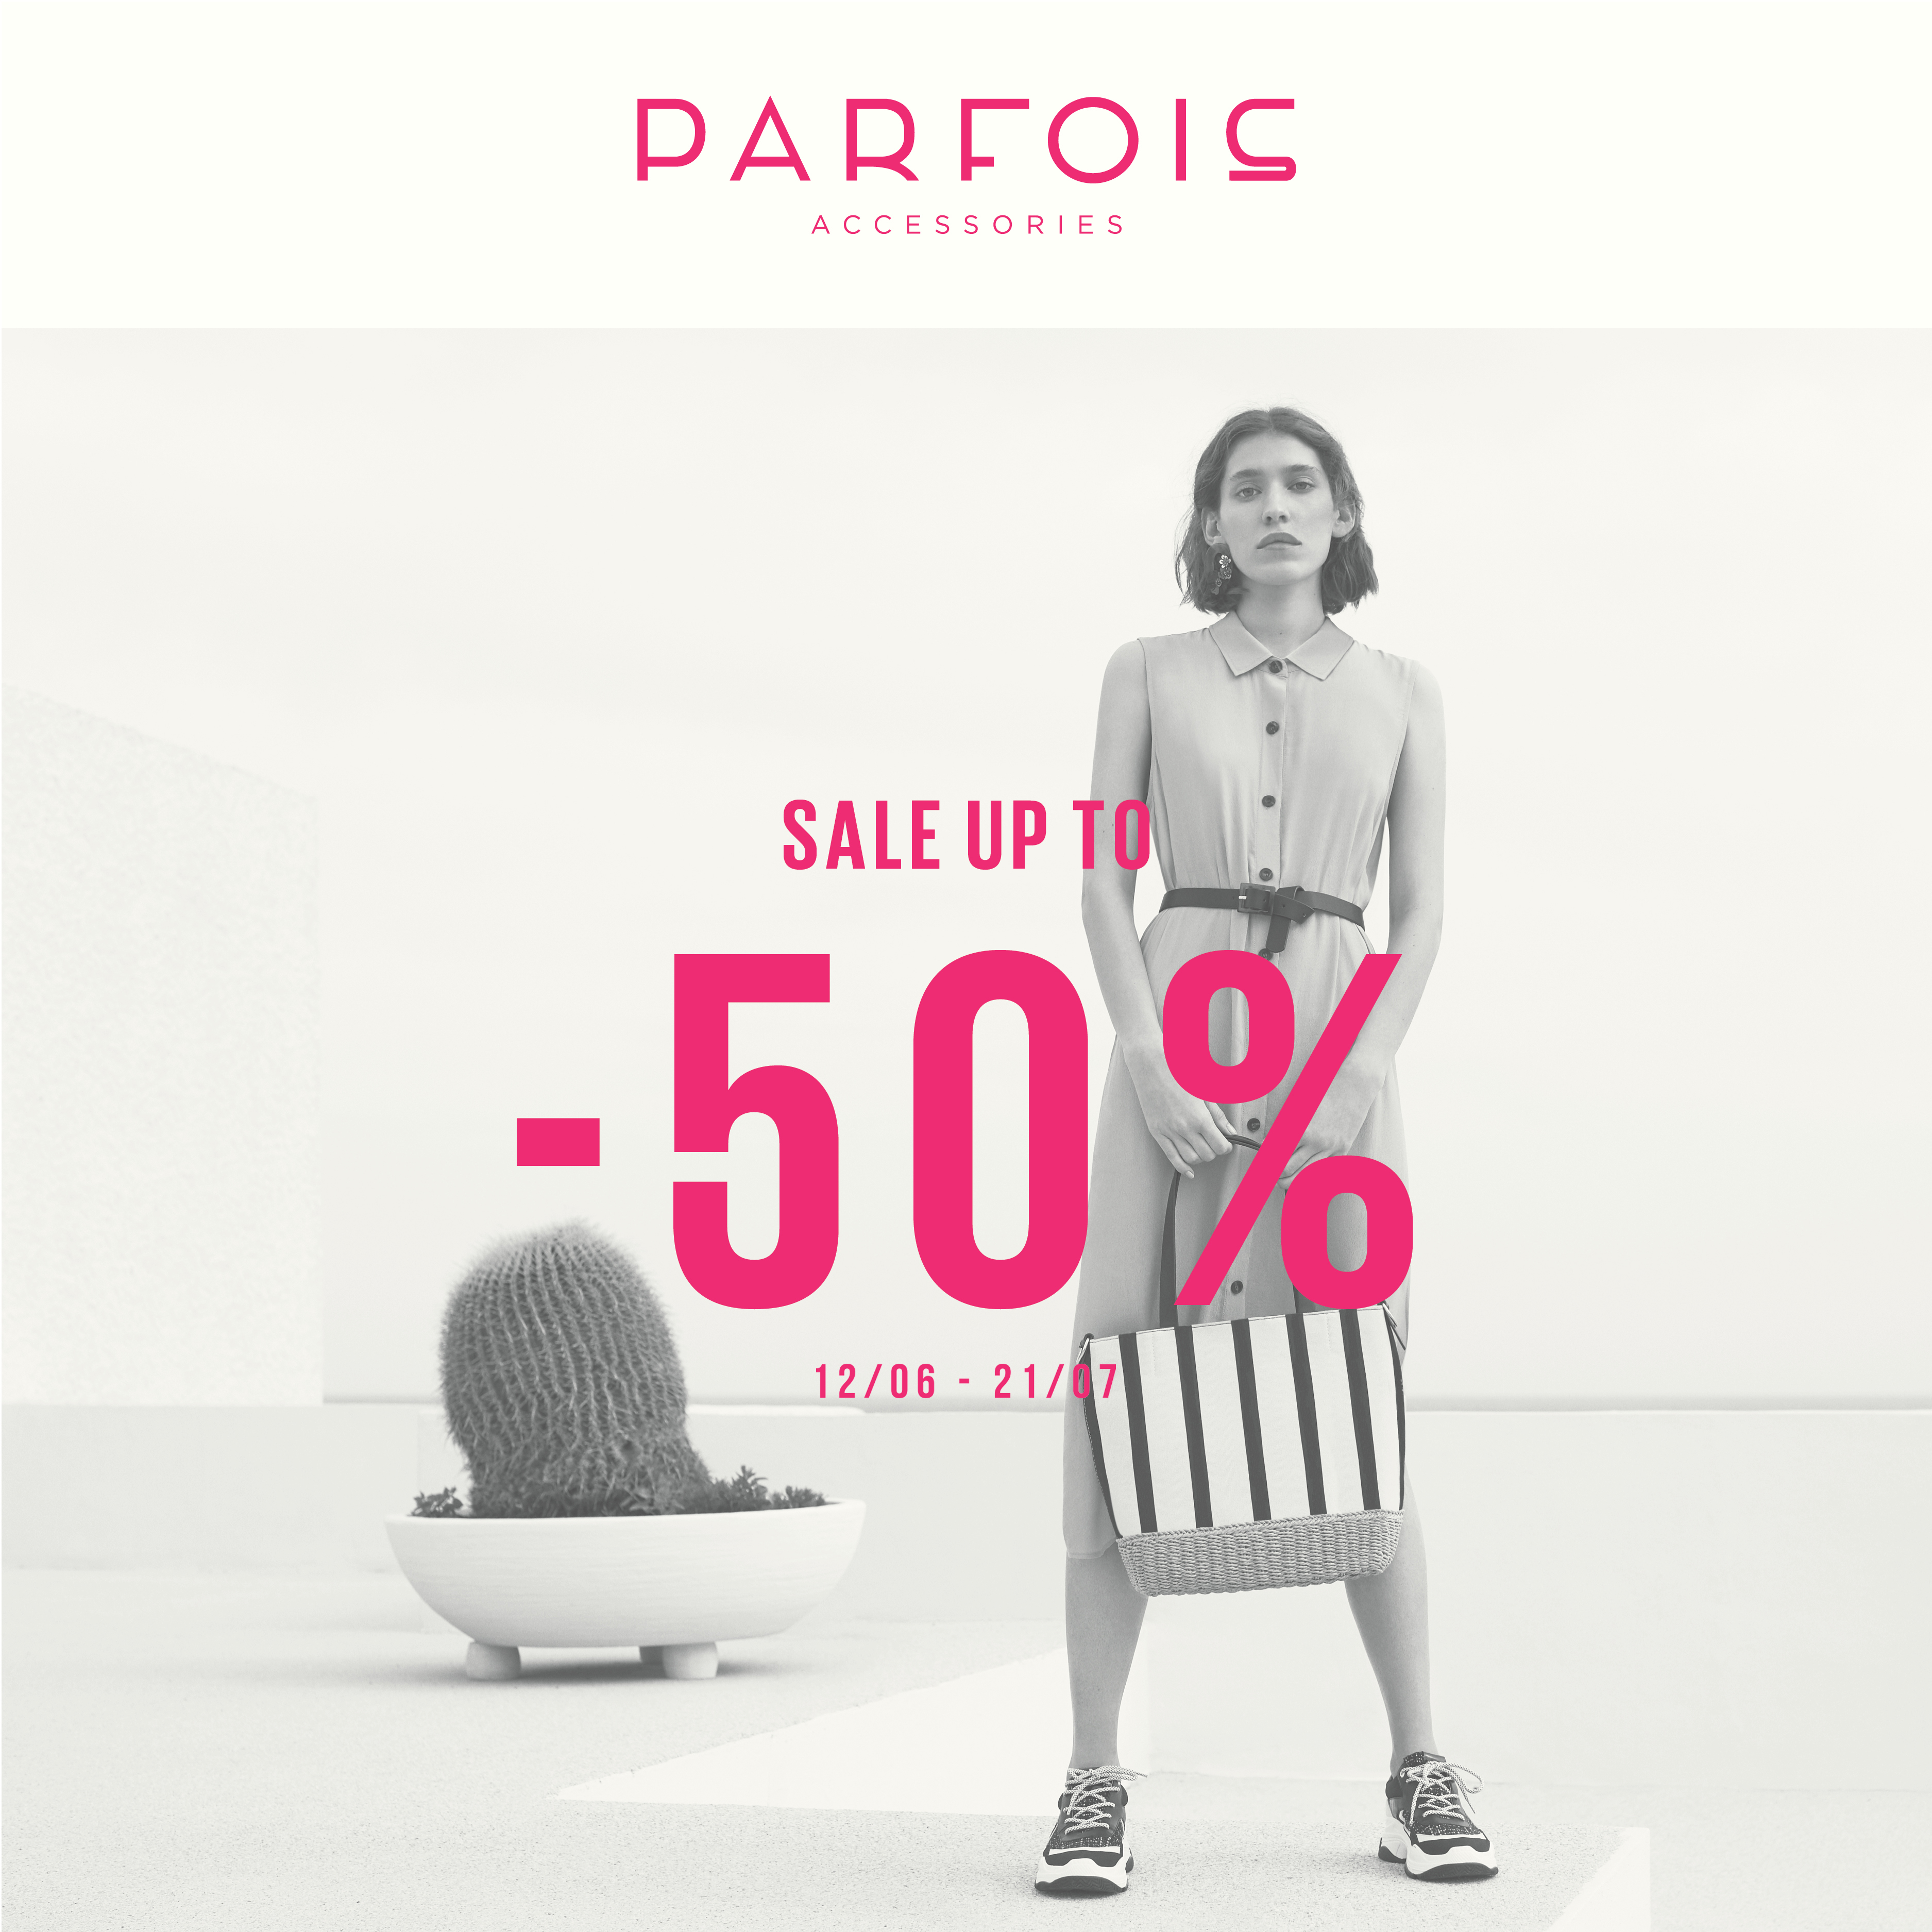 PARFOIS' END OF SEASON SALE: SALE UP TO 50%